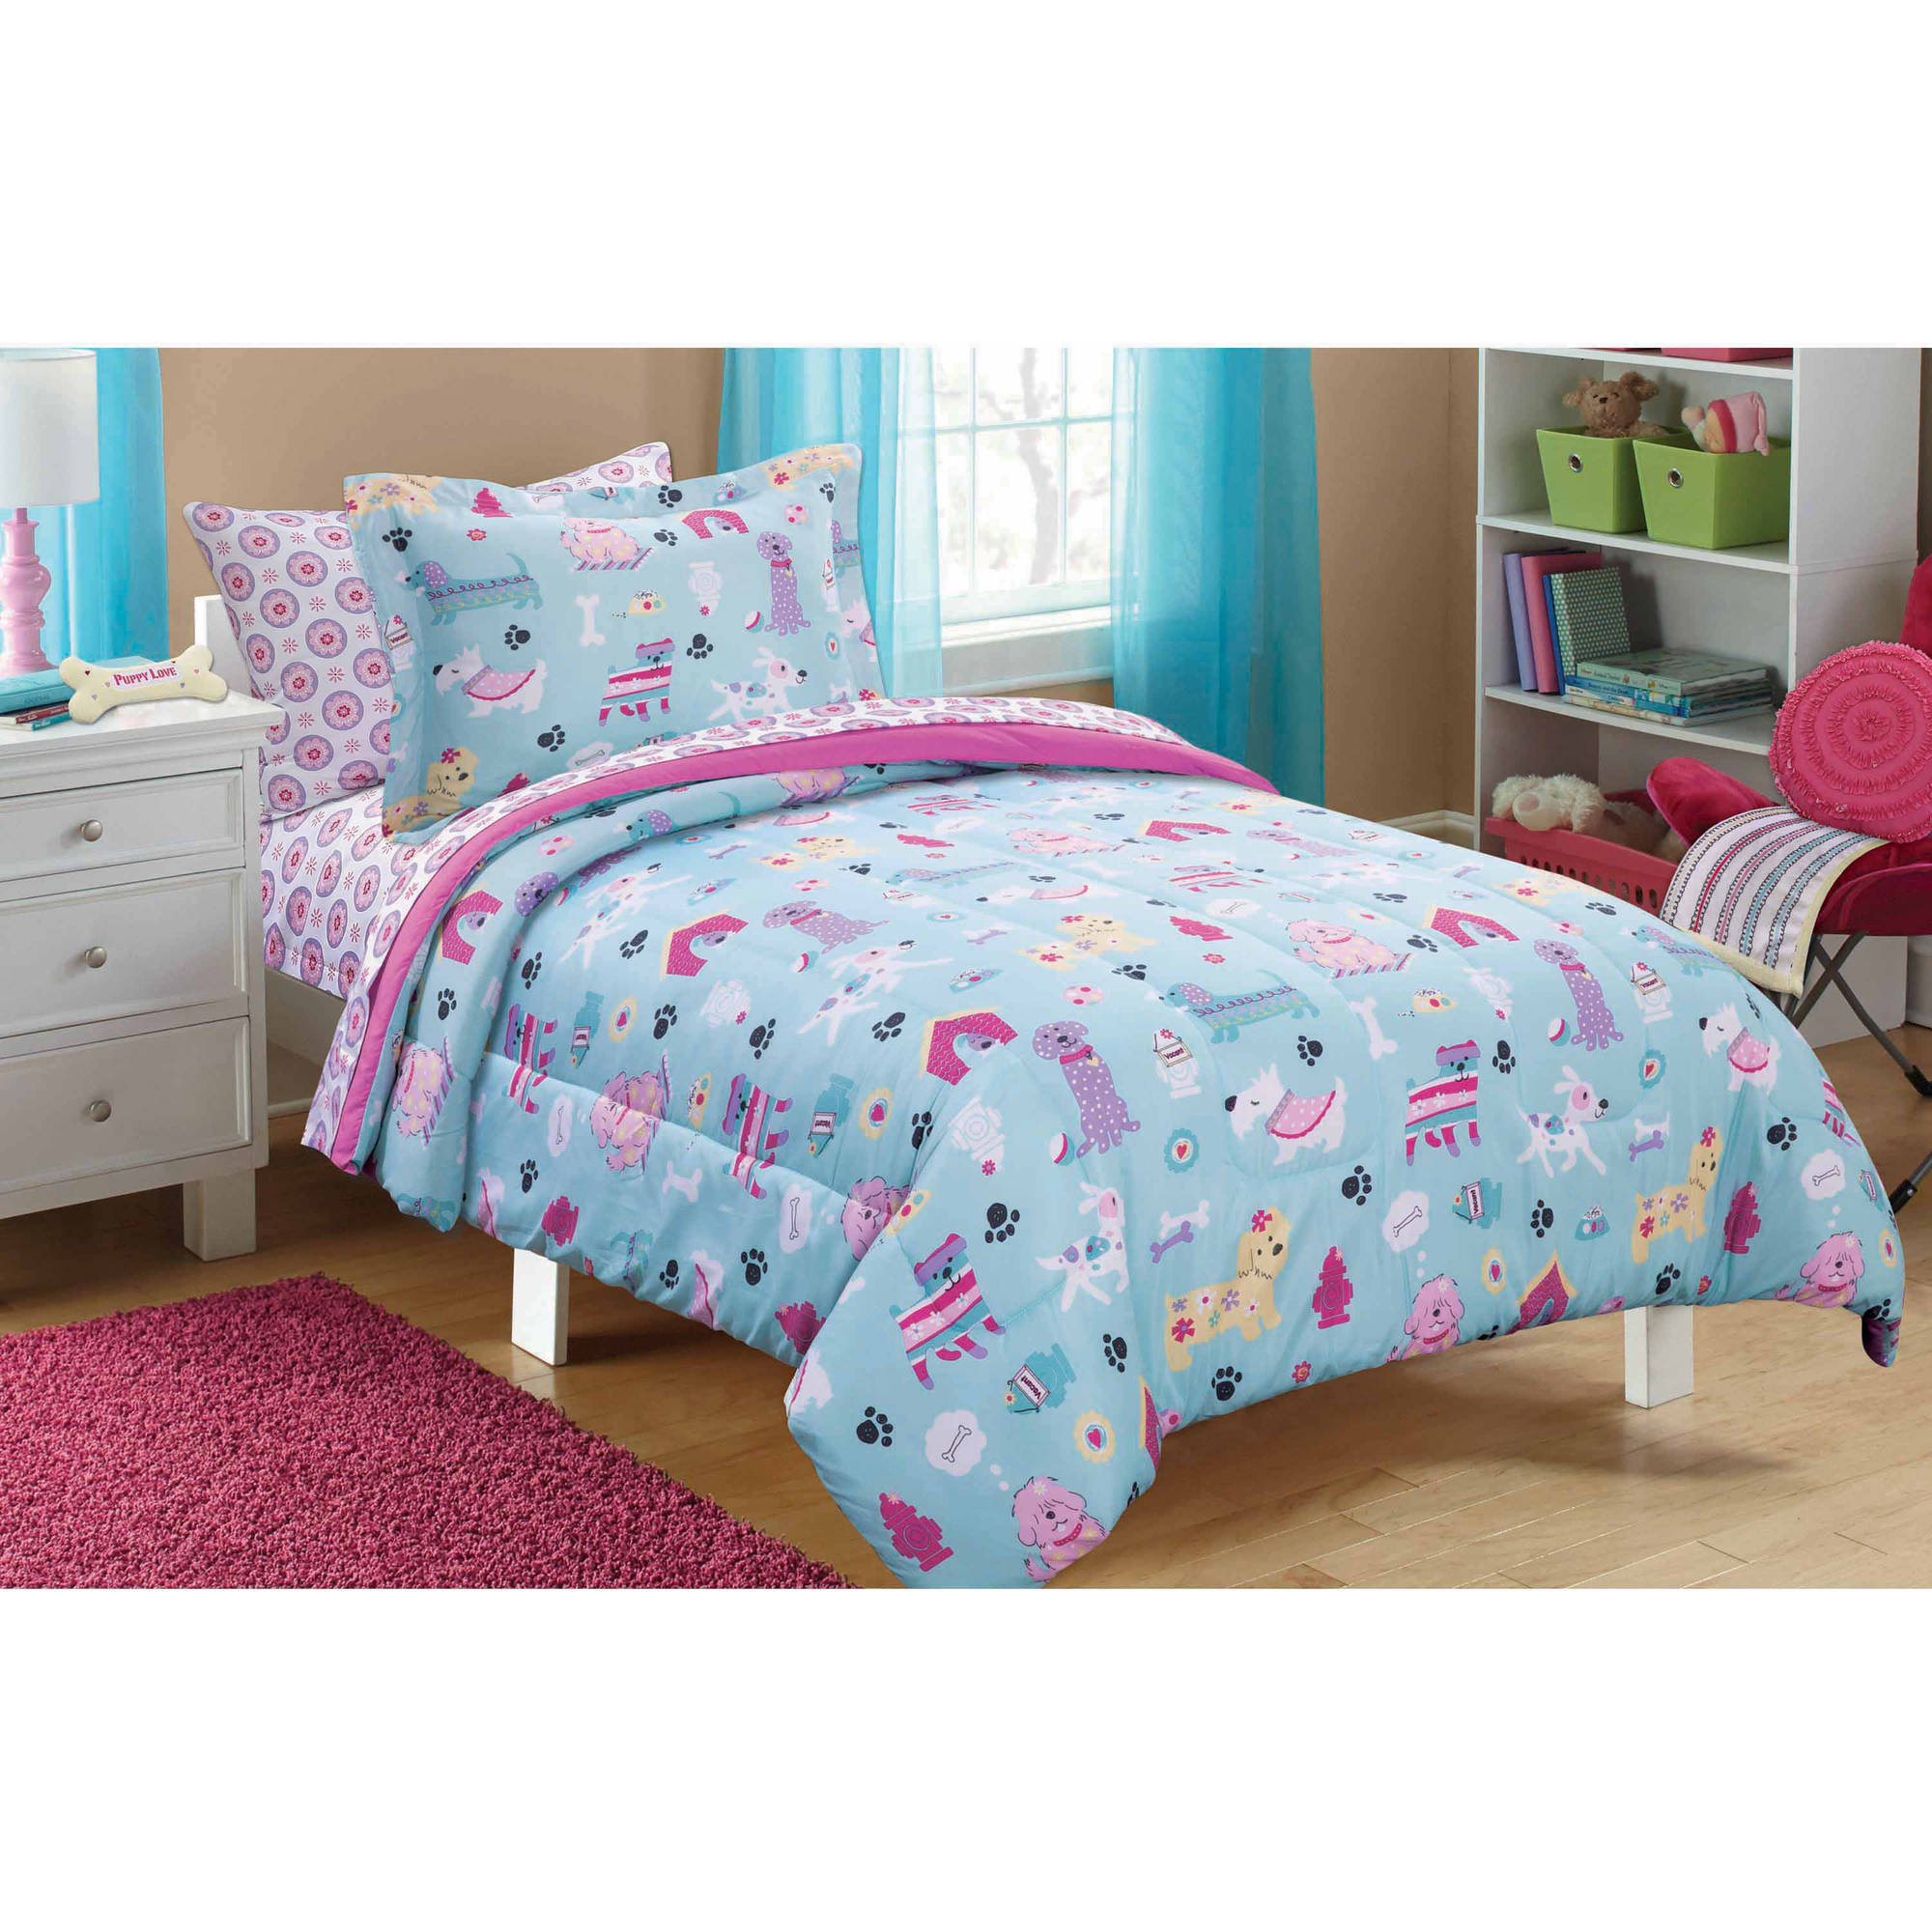 Peppa Pig Tweet Tweet Oink Bed in Bag Bedding Set Walmart